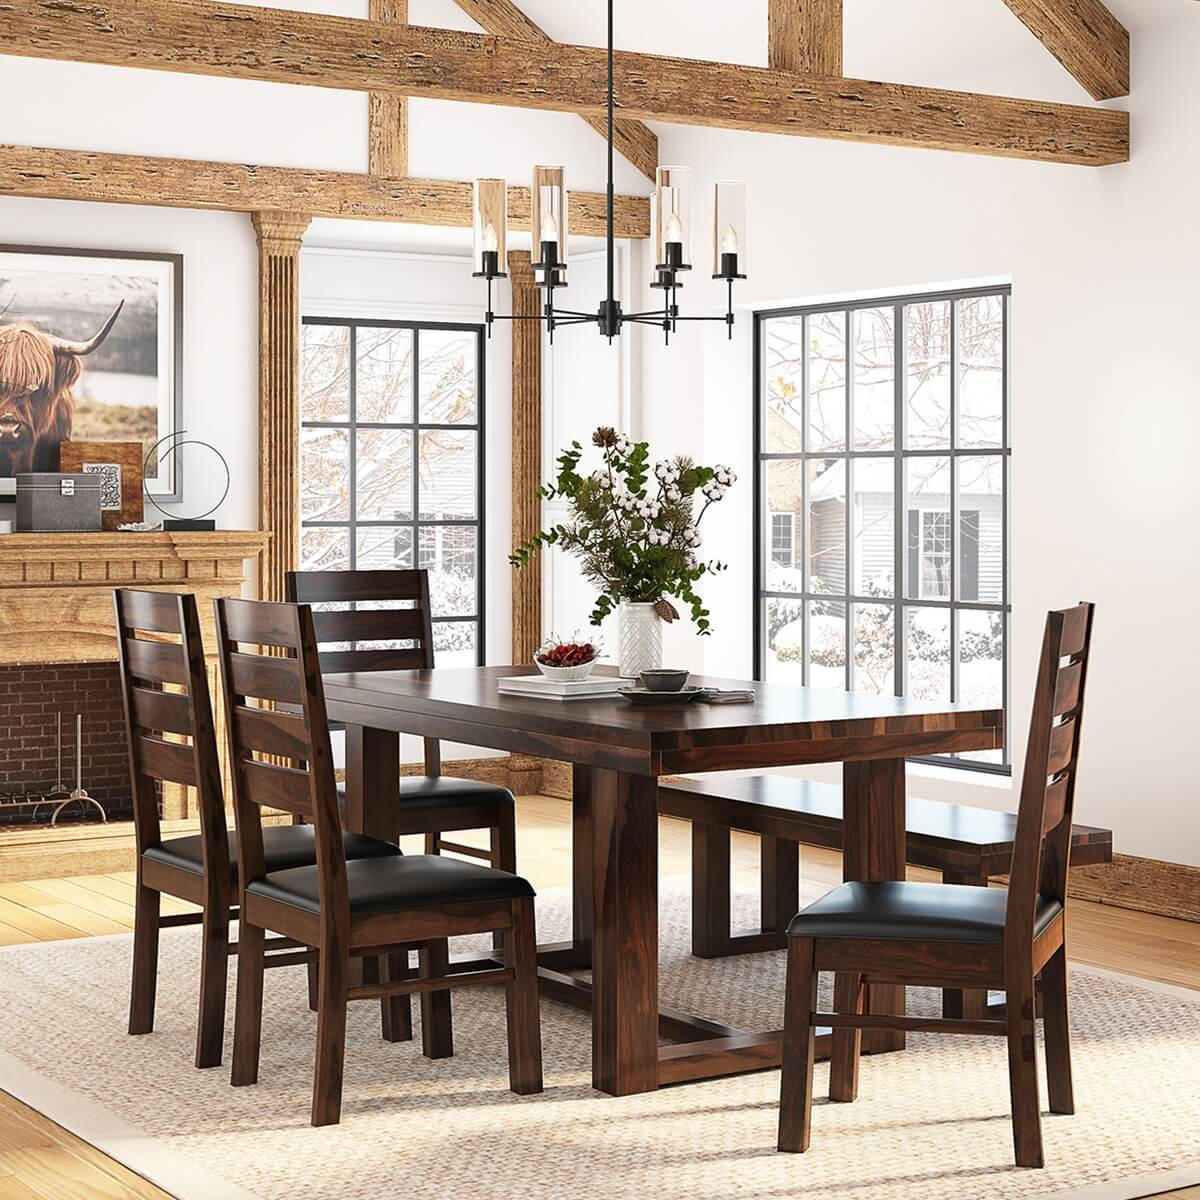 Kitchen Tables With Benches And Chairs Table Wood: Galveston Rustic Solid Wood 6-Piece Dining Table Chair Set